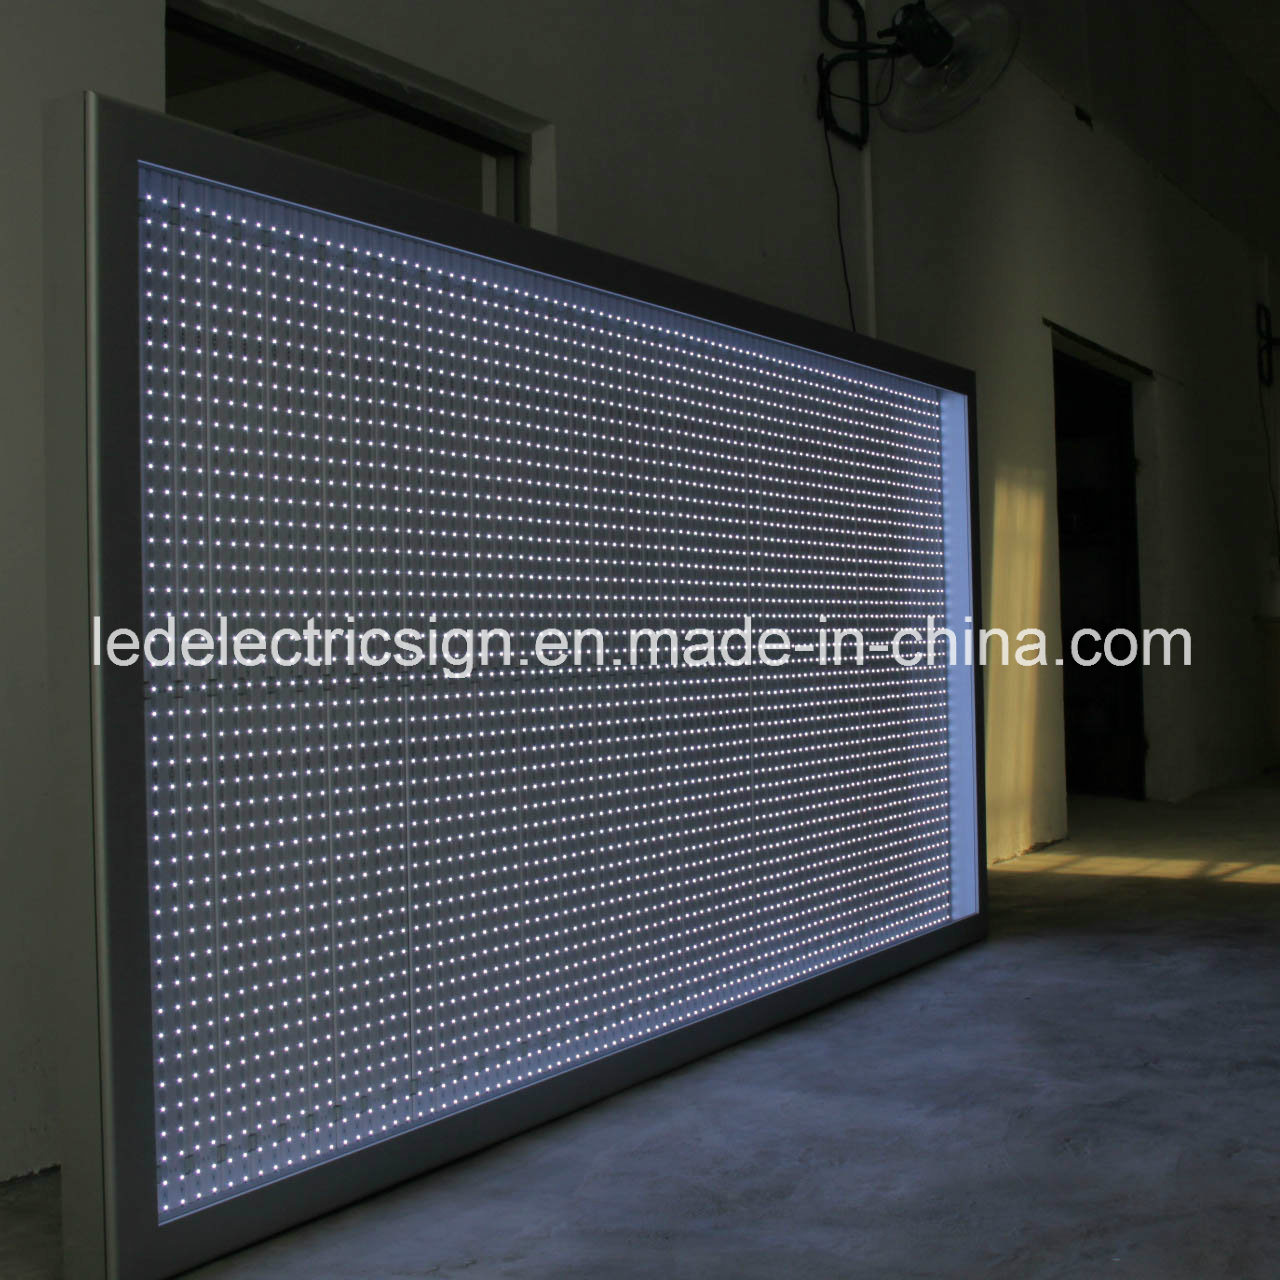 Large Size Photo Frame with Aluminum Frame LED Light Box for Advertising Display